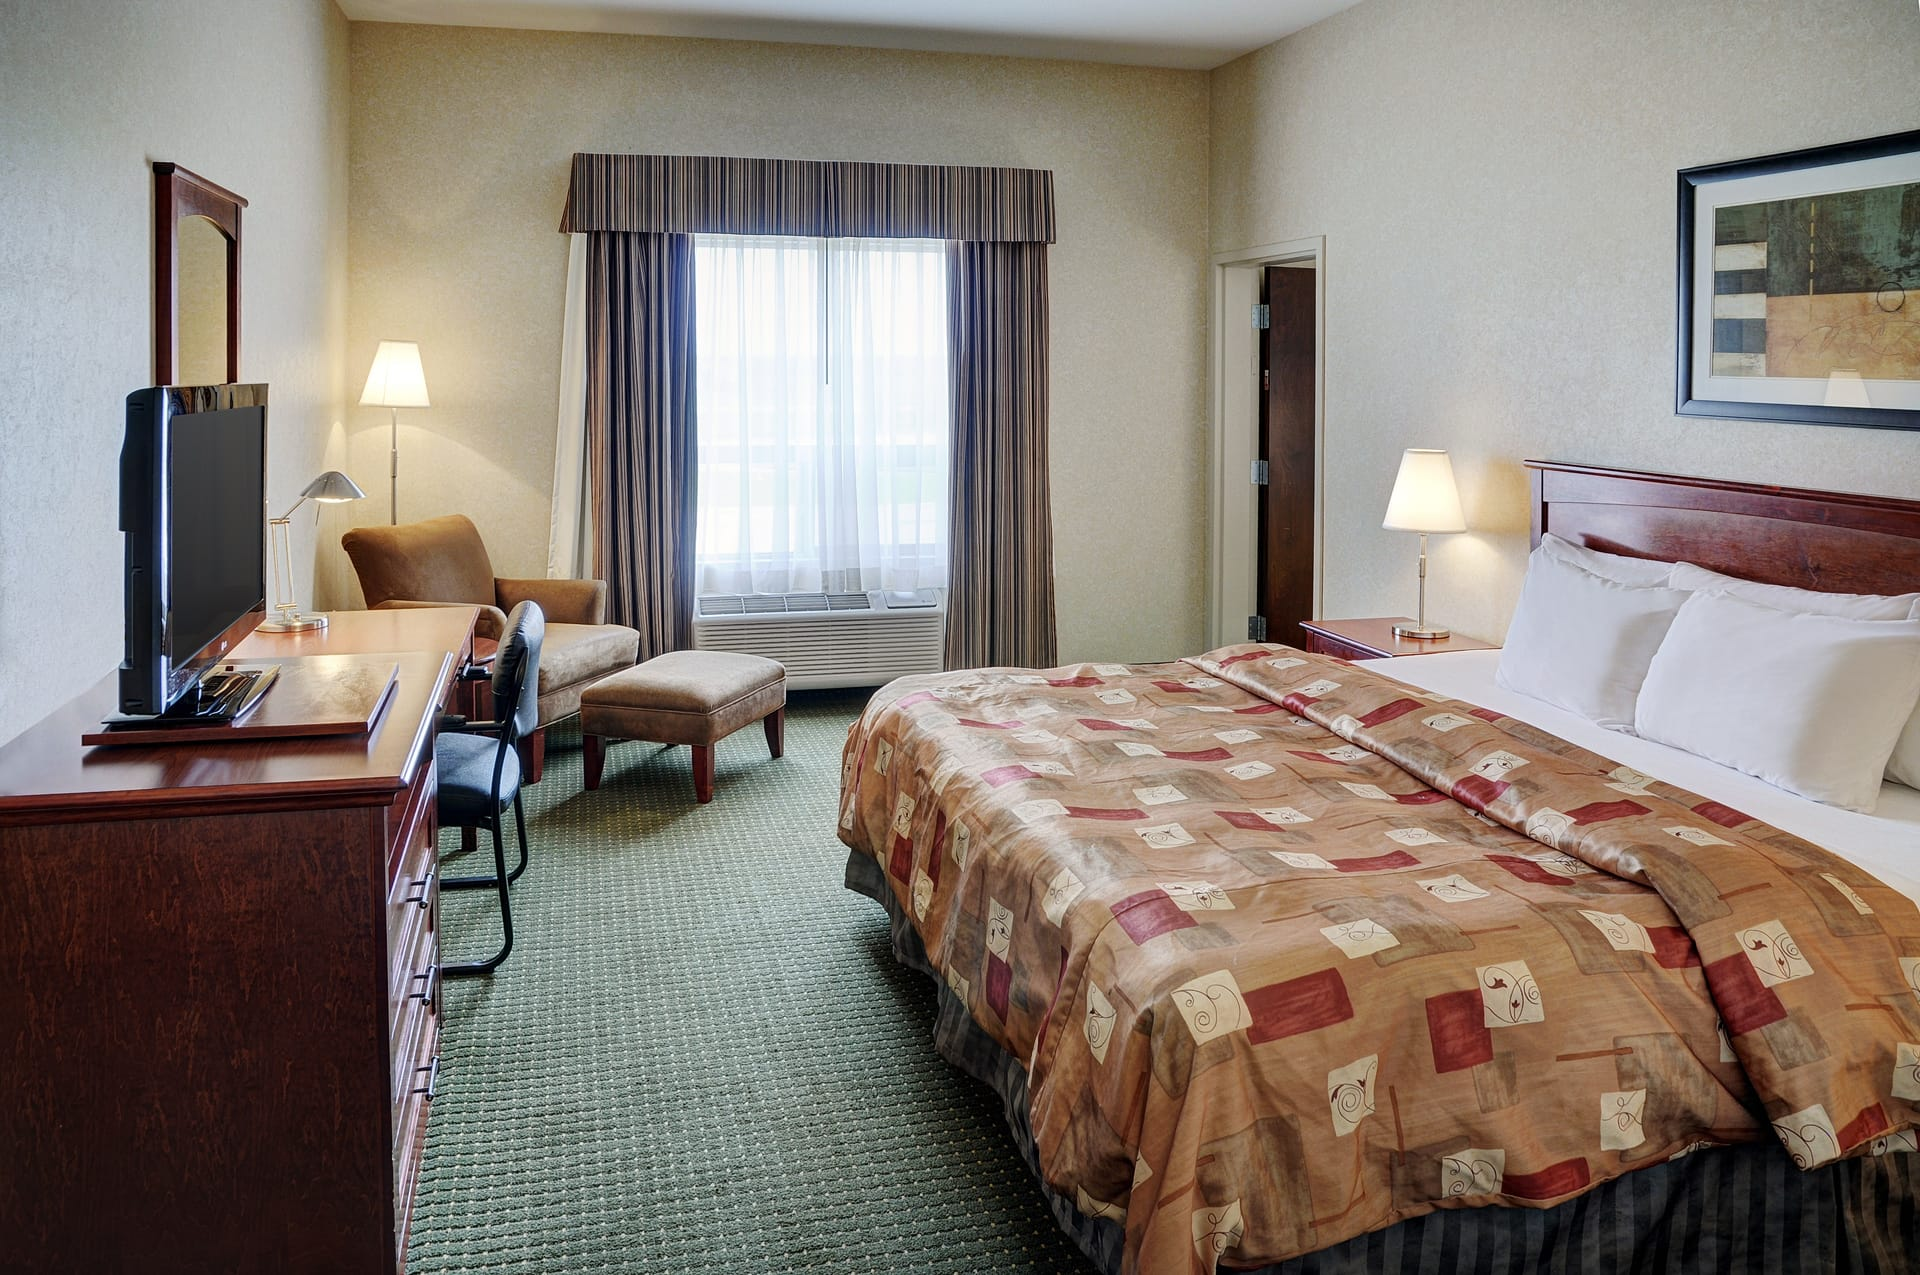 Lakeview Inns & Suites - Slave Lake